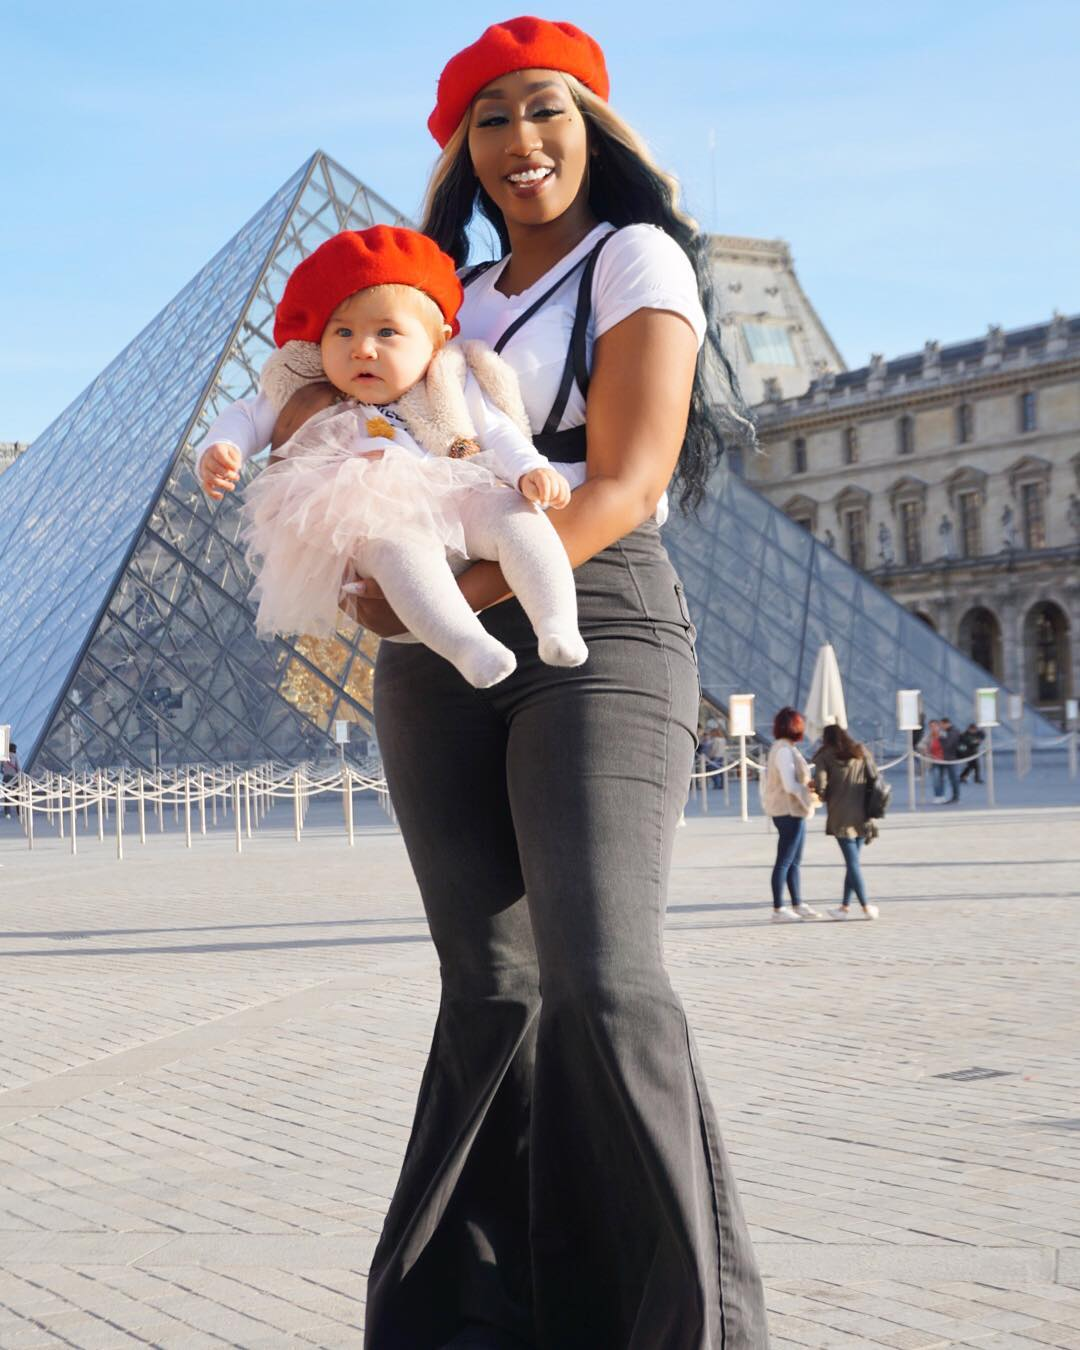 Victoria Kimani poses with a baby in Paris